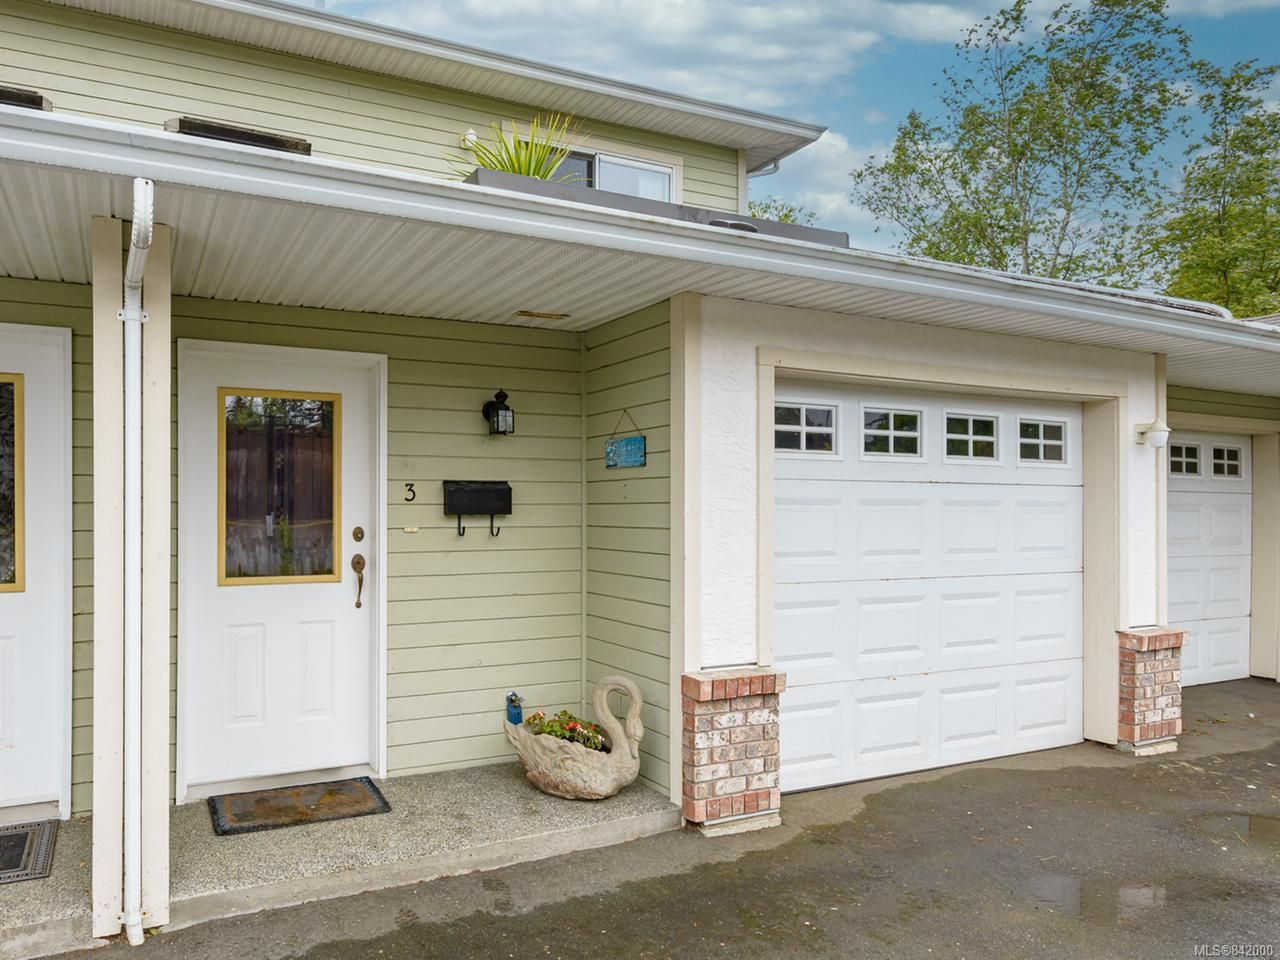 Main Photo: 3 163 Stewart St in COMOX: CV Comox (Town of) Row/Townhouse for sale (Comox Valley)  : MLS®# 842000